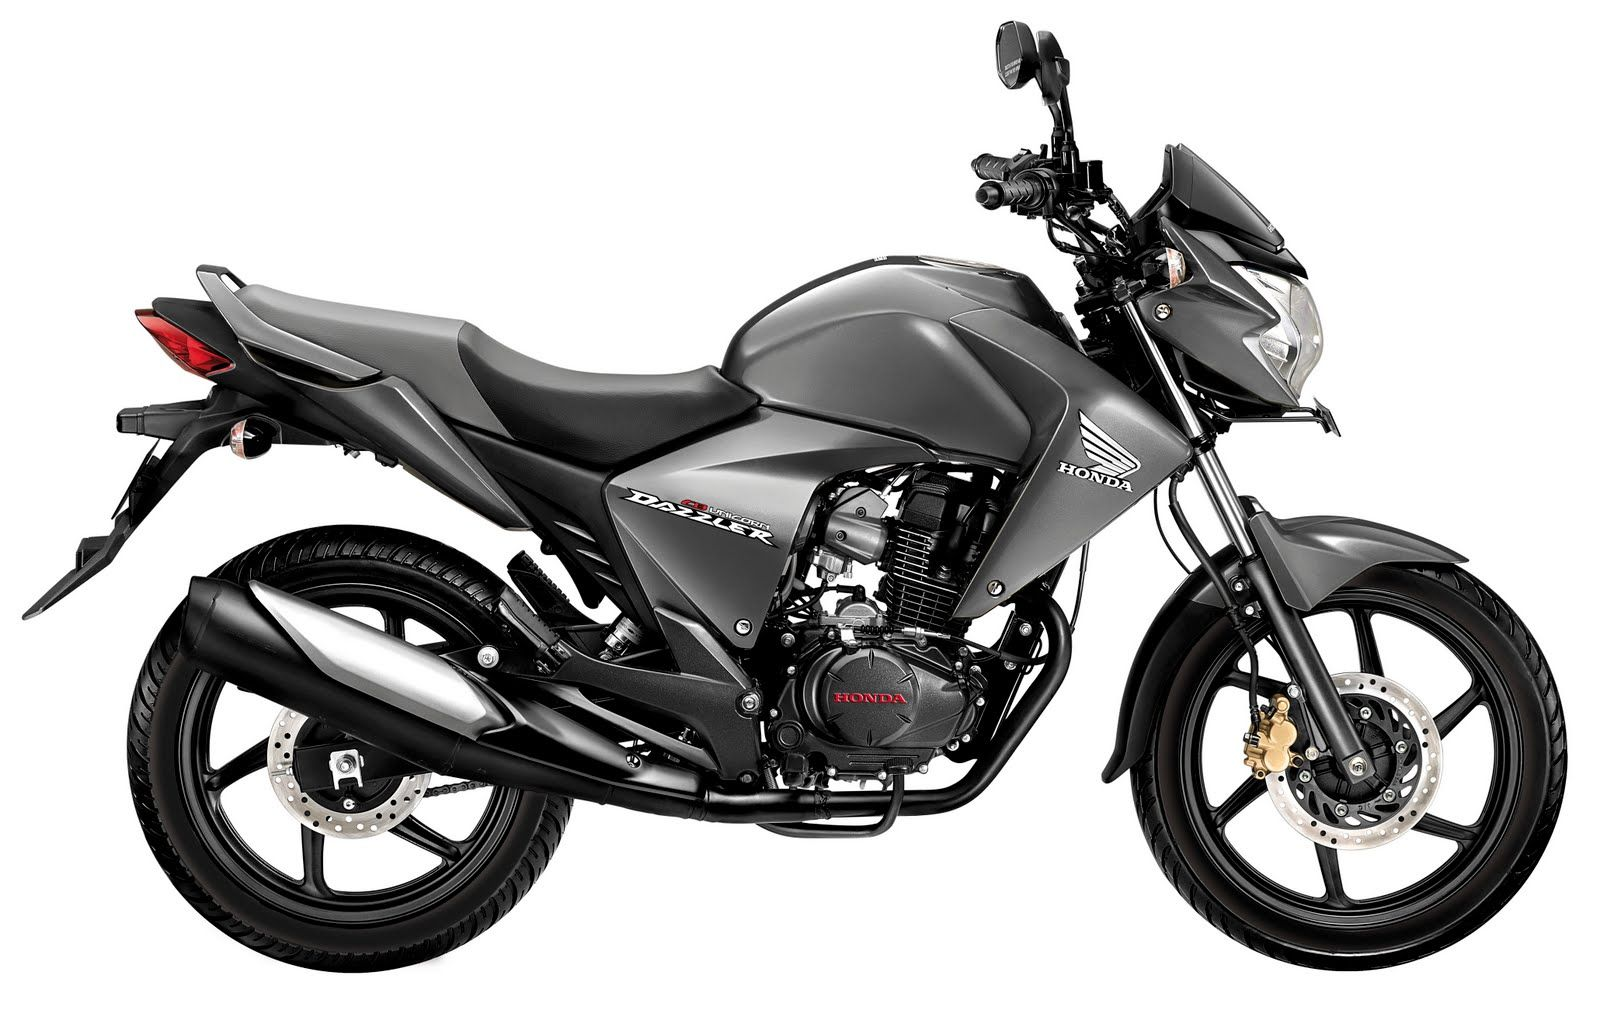 Browse here new launched honda cb dazzler bike prices in india 2013 online